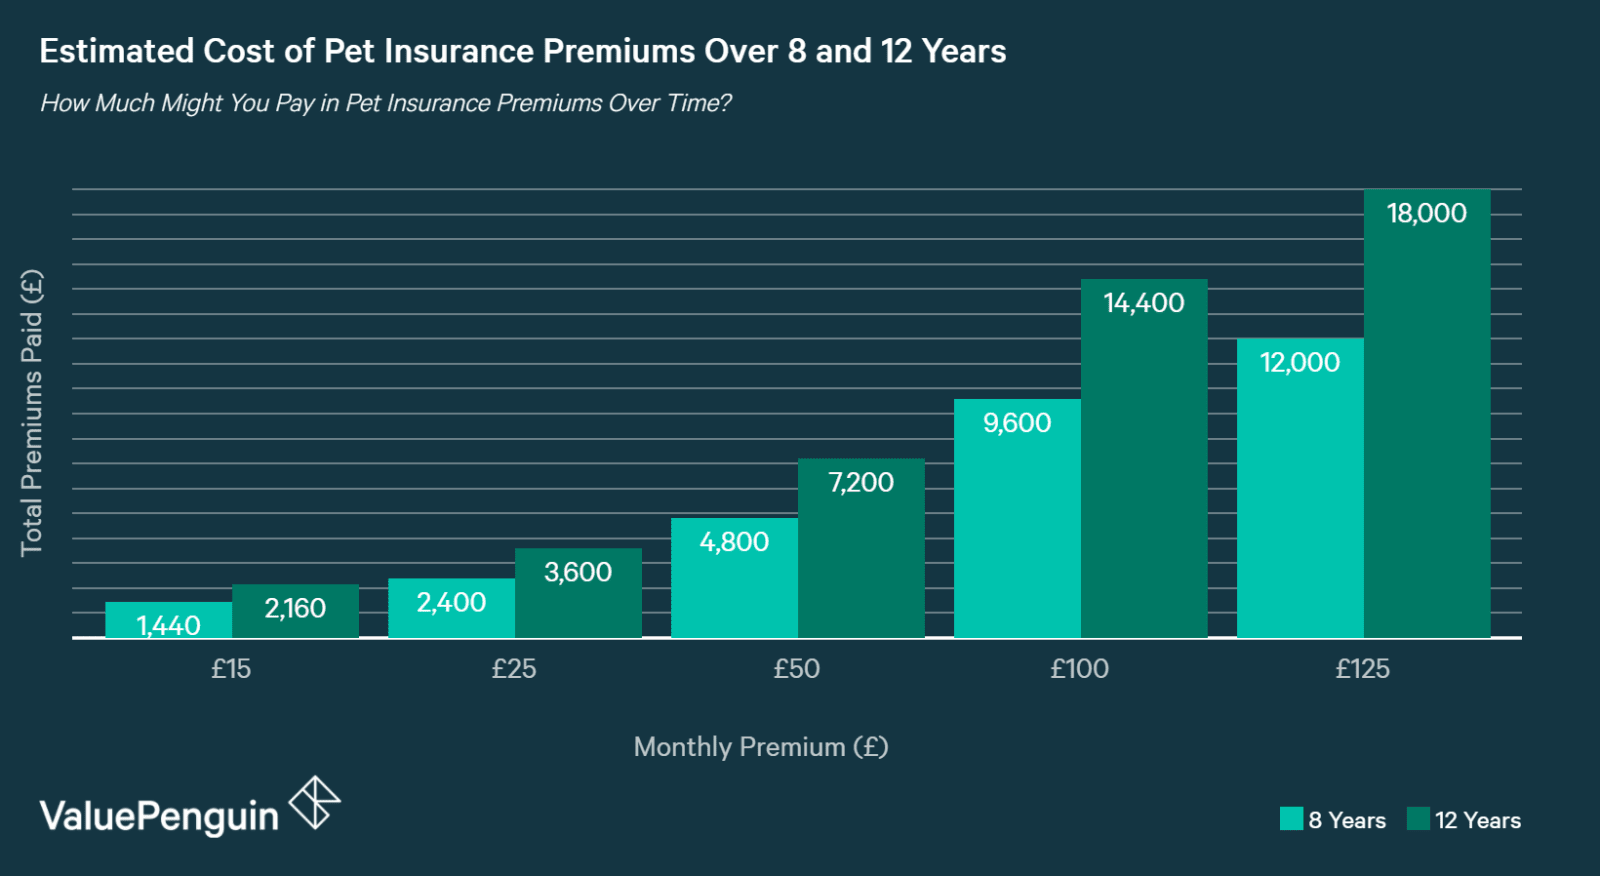 chart showing How Much You Might Pay in Pet Insurance Premiums Over Time